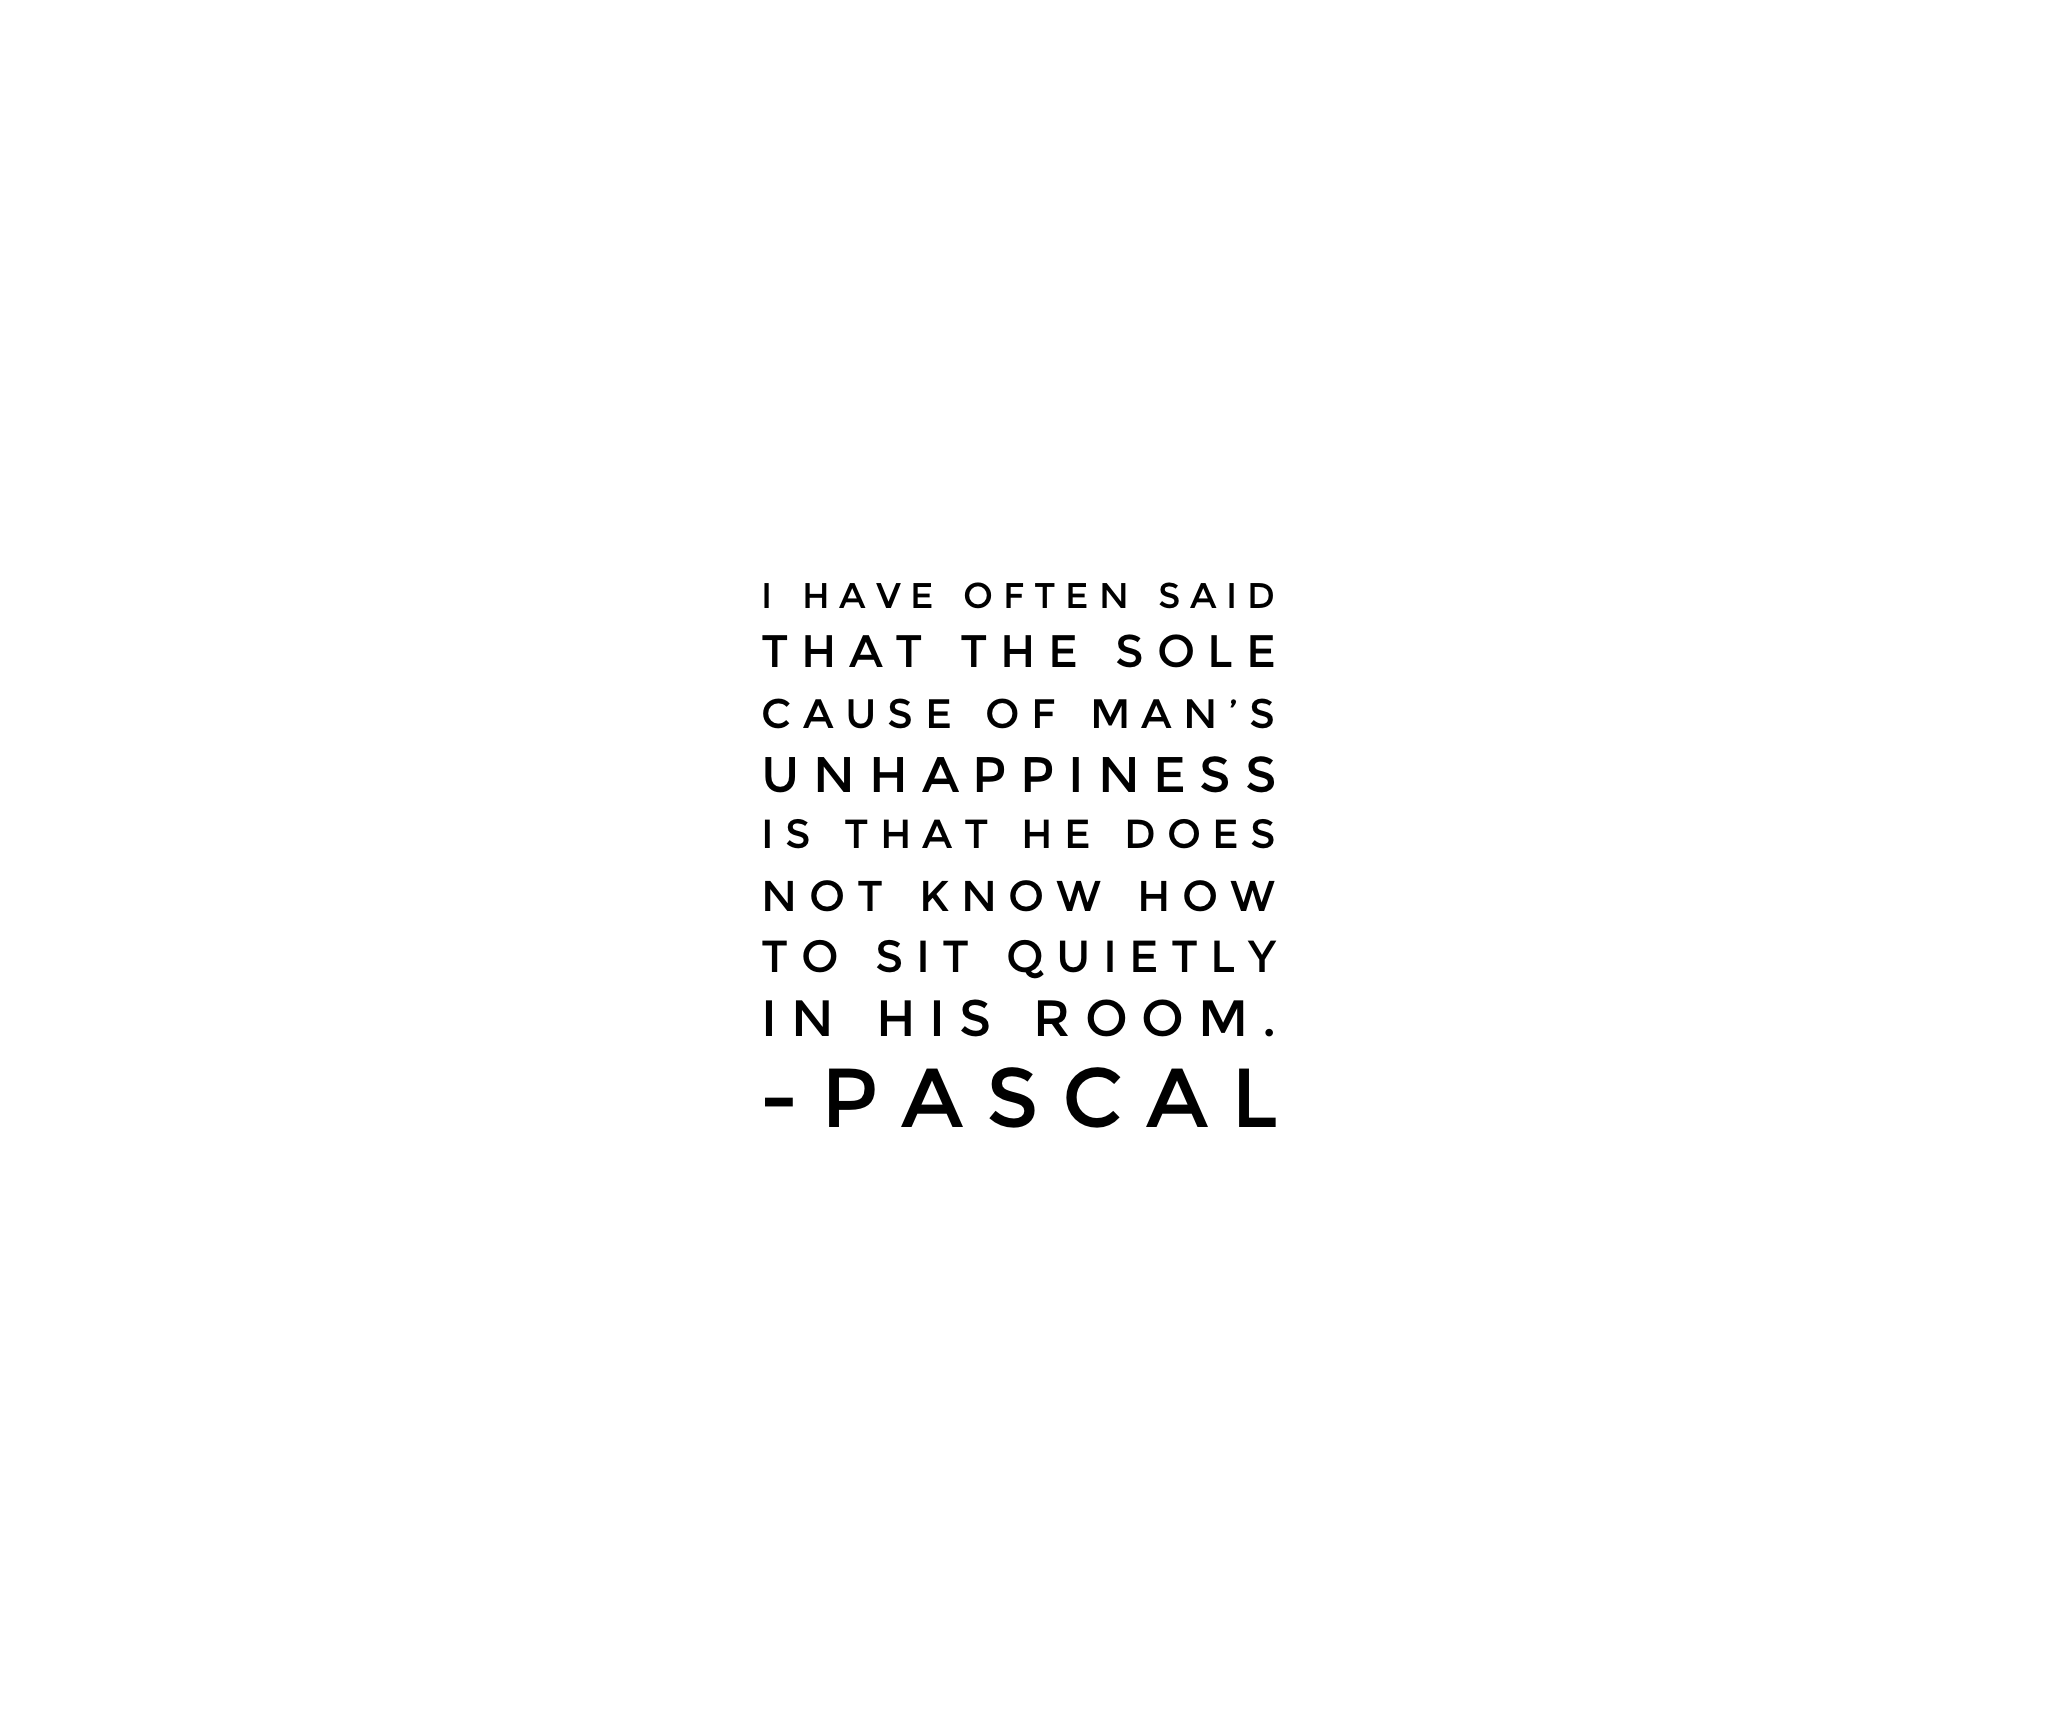 """""""I have often said that the sole cause of man's unhappiness is that he does not know how to sit quietly in his room."""" — Pascal"""